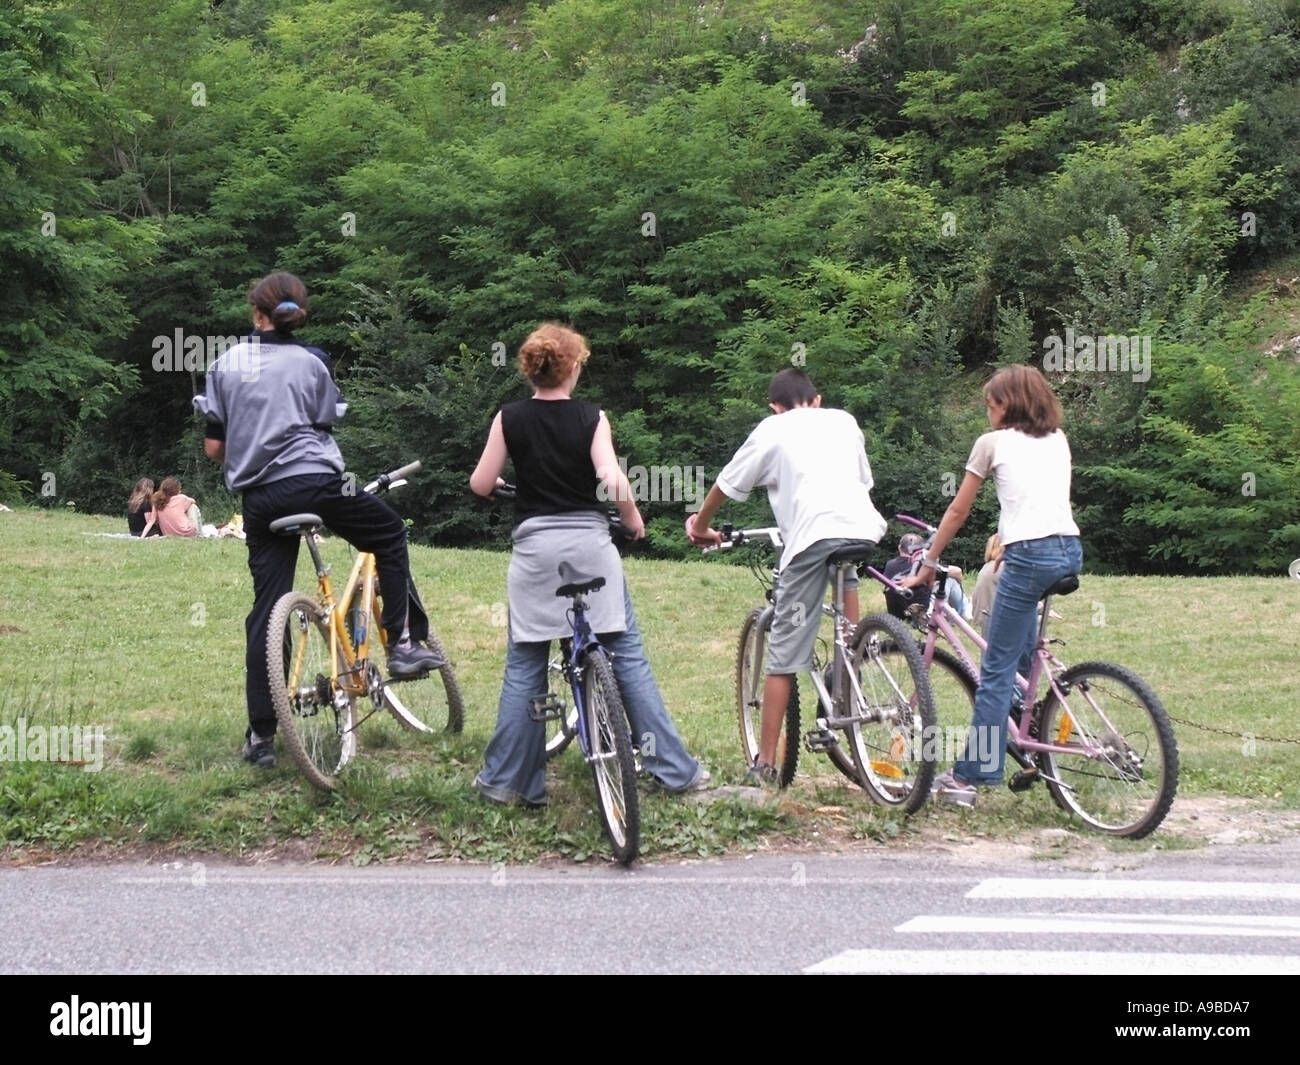 france group of french teenagers on bicycles - Stock Image